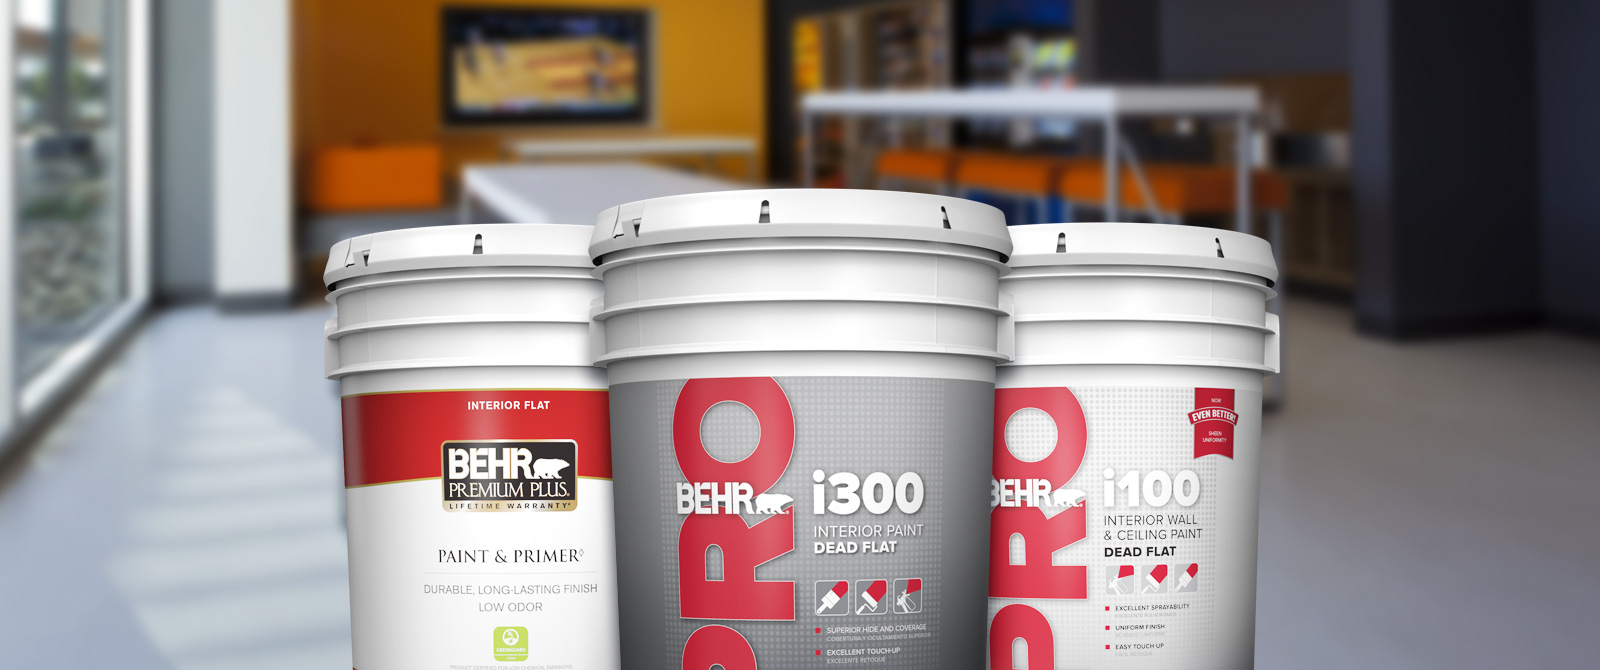 BehrPro interior products landing page desktop image featuring 5 gallon cans.